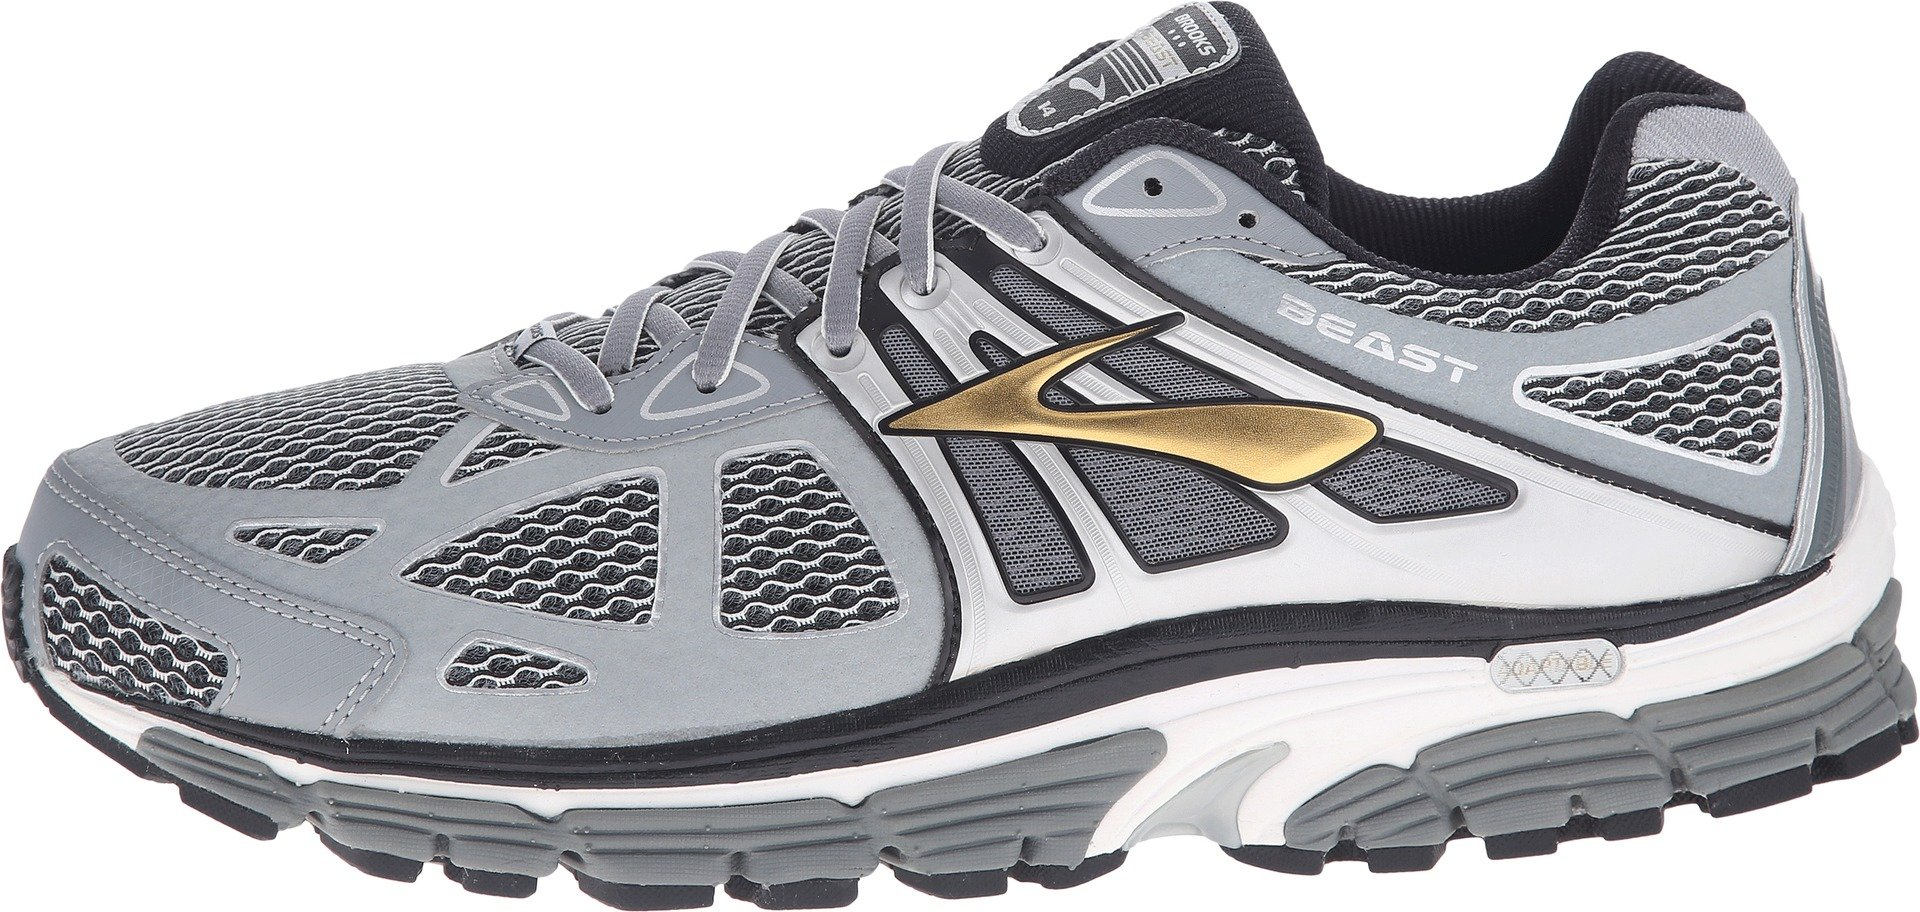 9 Best Running Shoes For Bad Knees 2019 – PlayPolicy